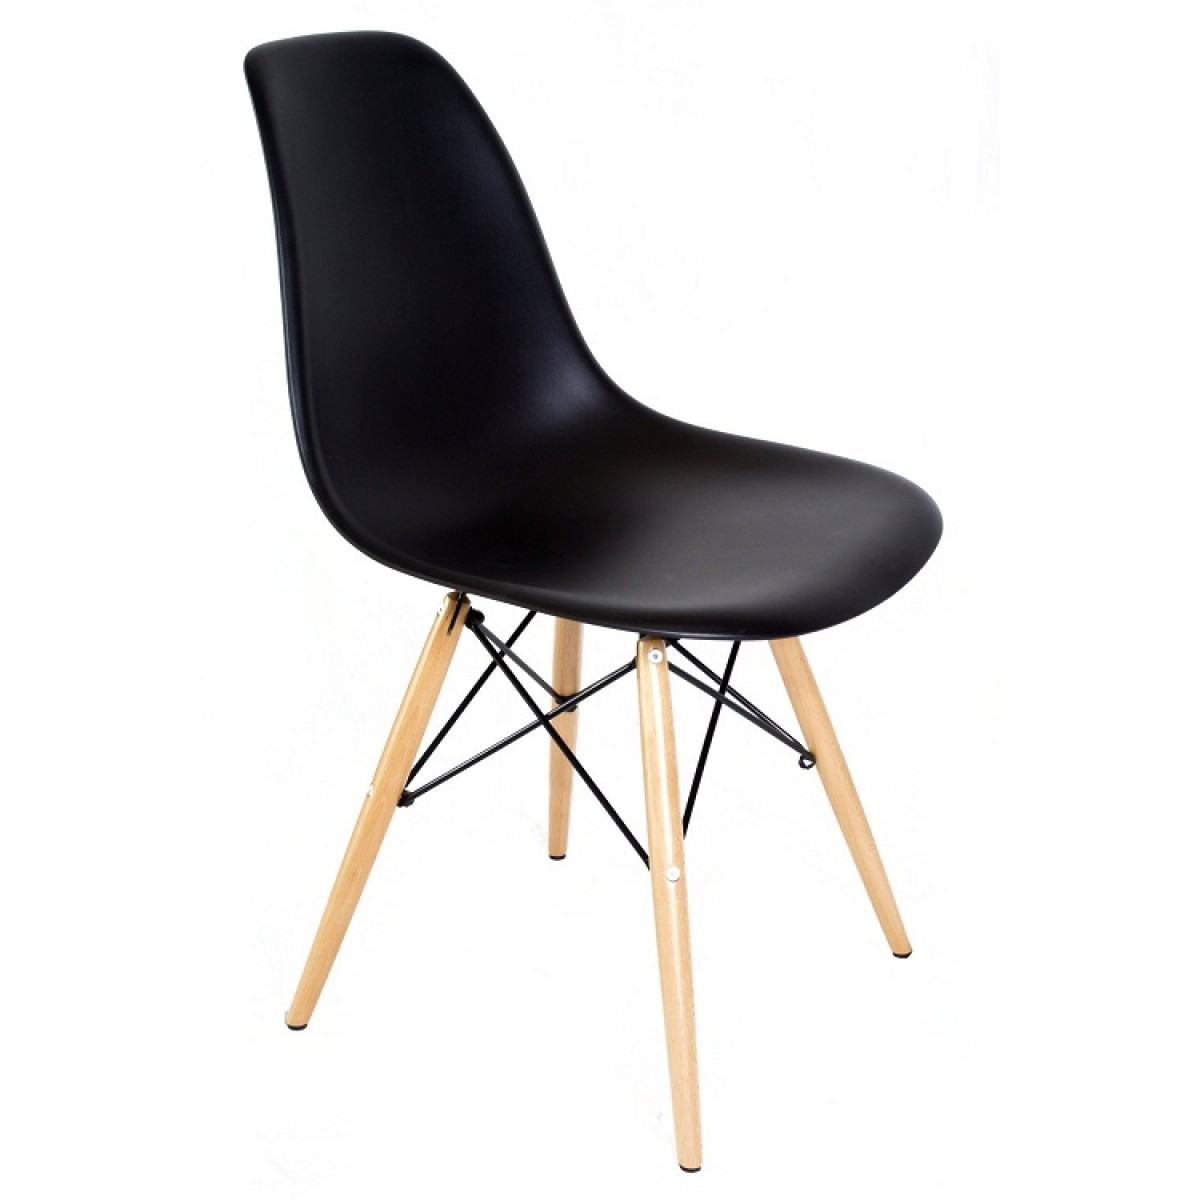 black plastic chair with wooden legs remote control holder for arm eames style dsw molded dining shell